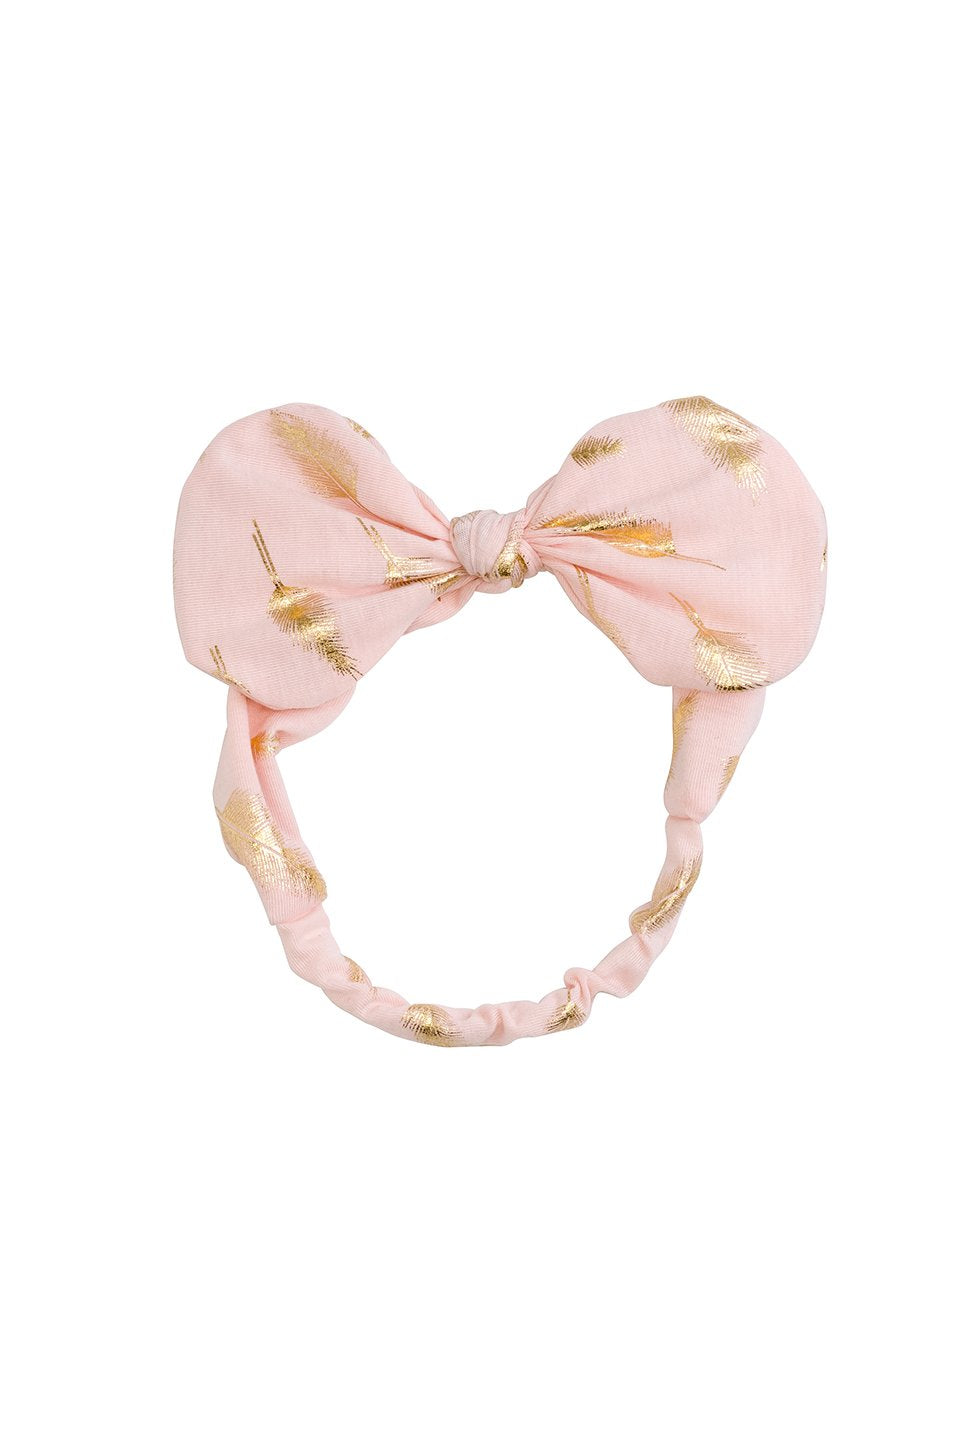 Bunnie Bow Wrap - Blush/Gold Feather Print - PROJECT 6, modest fashion